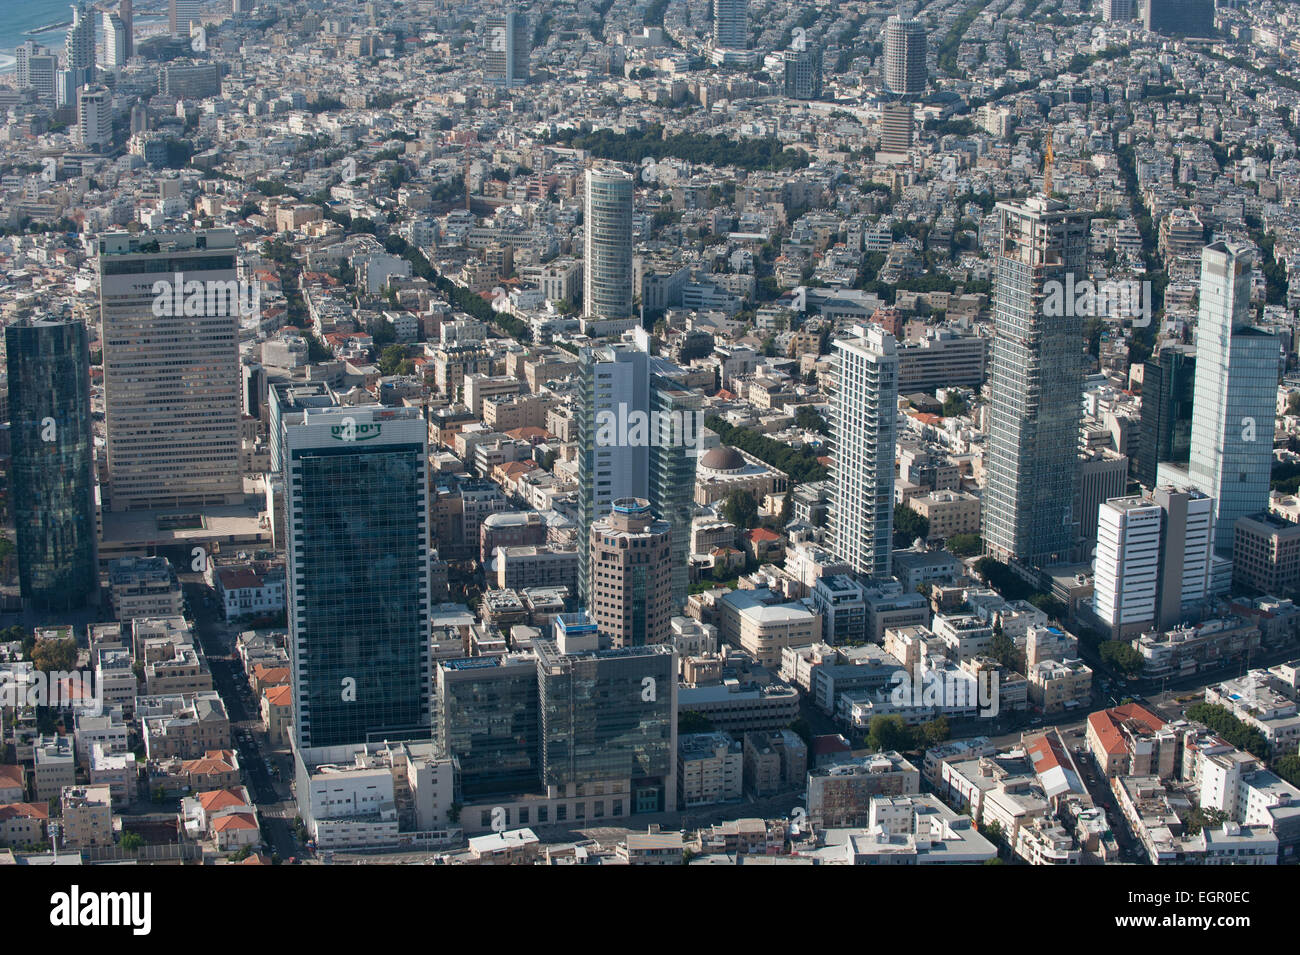 Aerial Photography of Tel Aviv, Israel - Stock Image